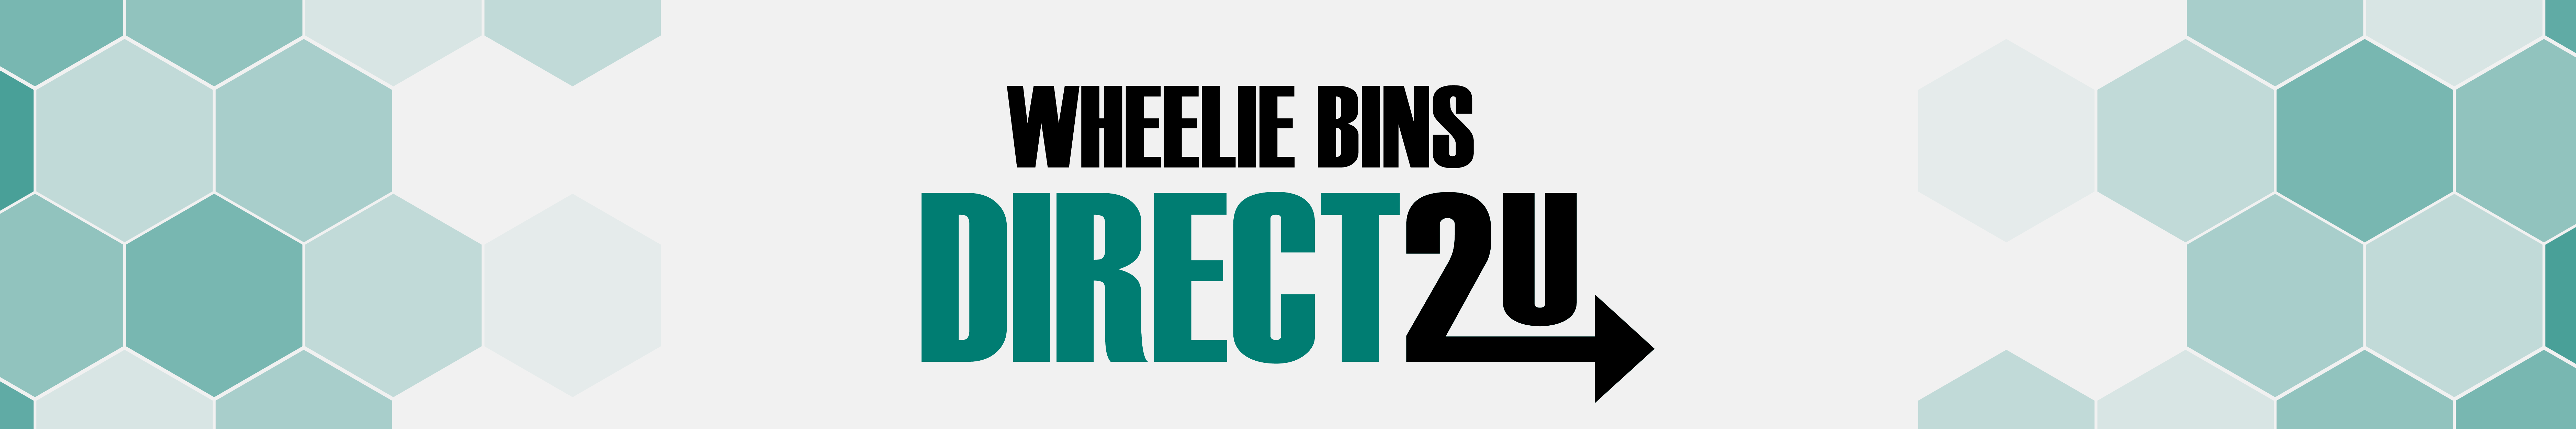 Wheelie Bins Blog